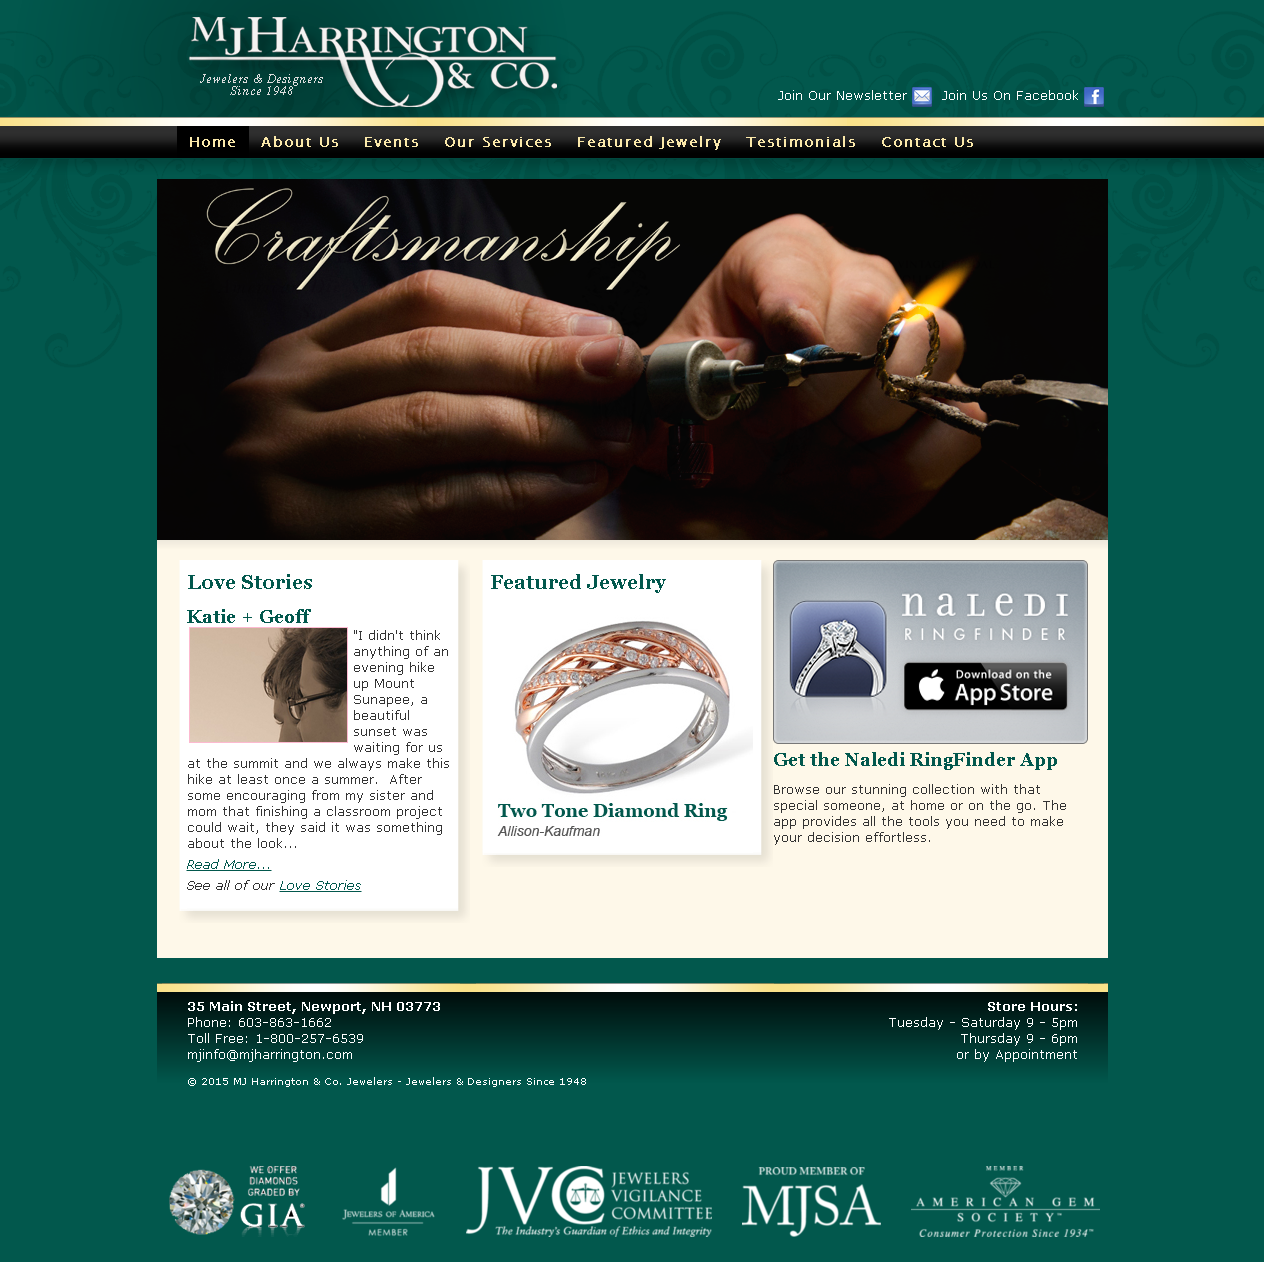 MJ Harrington & Co. Jewelers